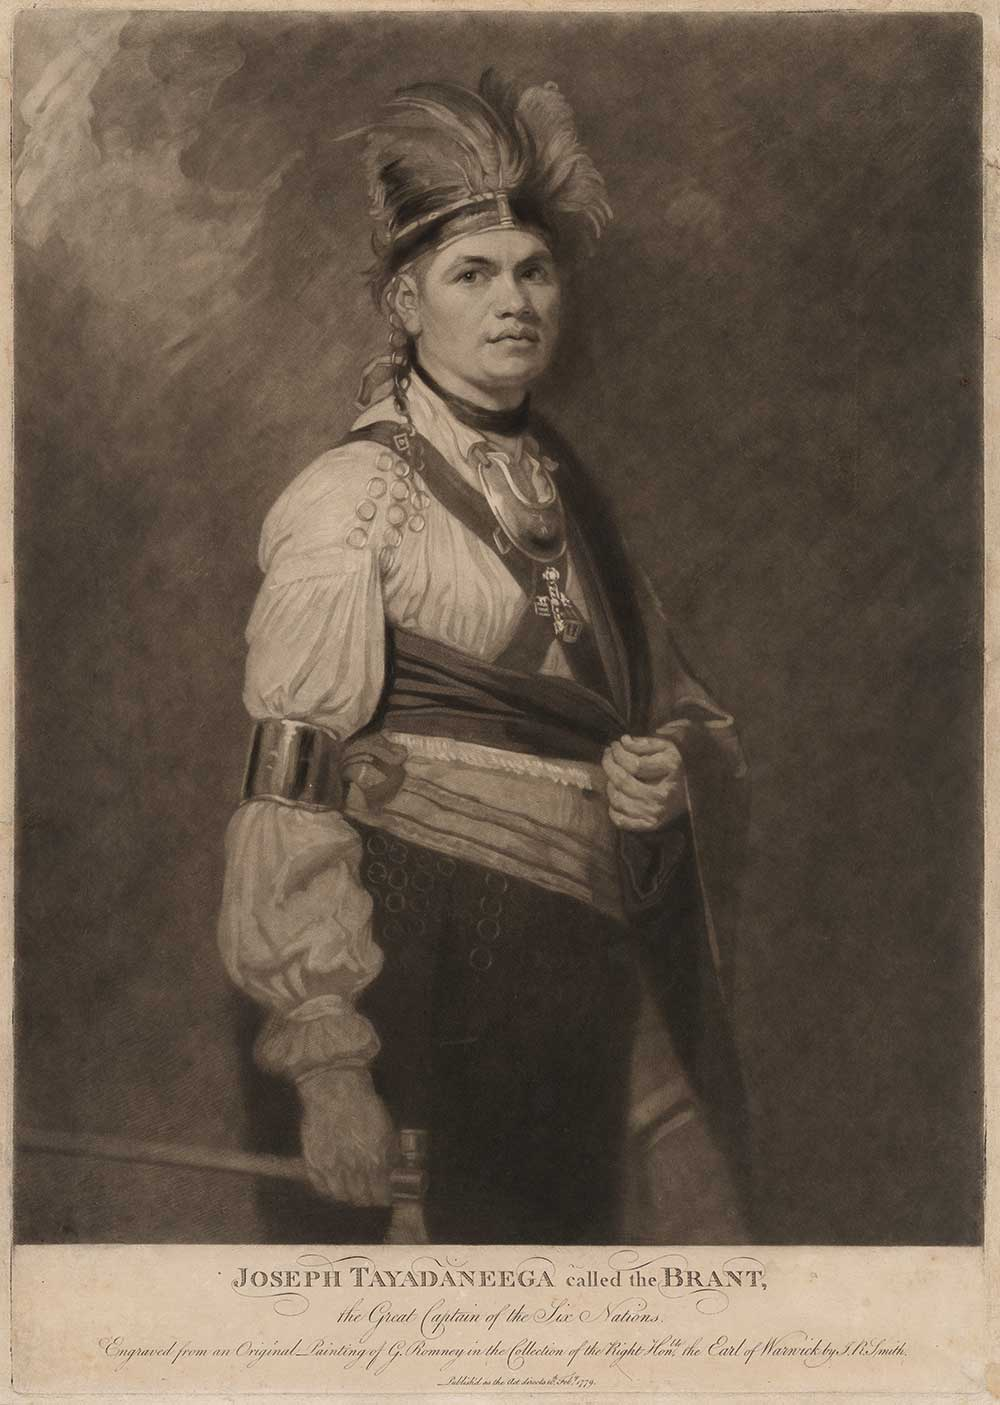 Black and white illustration of American Indian man wearing a fanciful style of dress that is neither Anglo-American nor American Indian, but rather a hodgepodge reflecting intercultural exchange